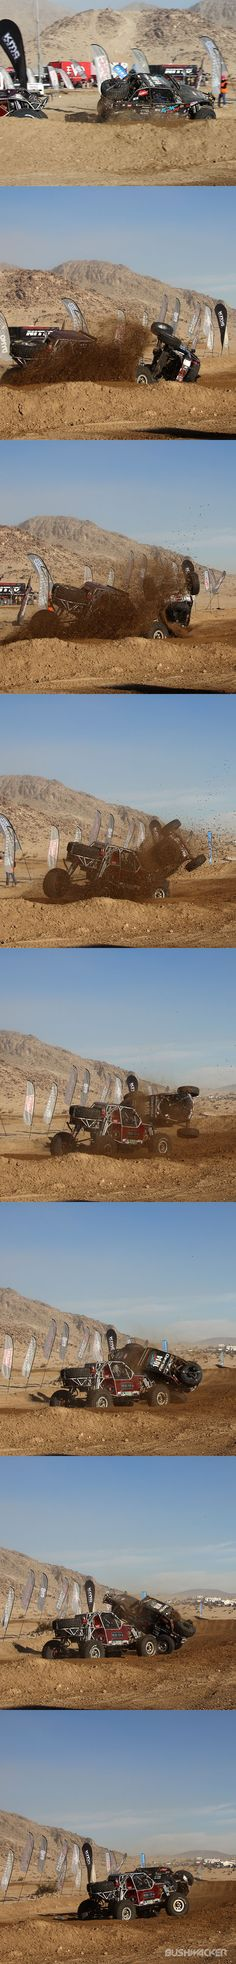 Crash sequence from the start of the 2015 King of the Hammers Race on February 6. No one was hurt. Read more on our blog!